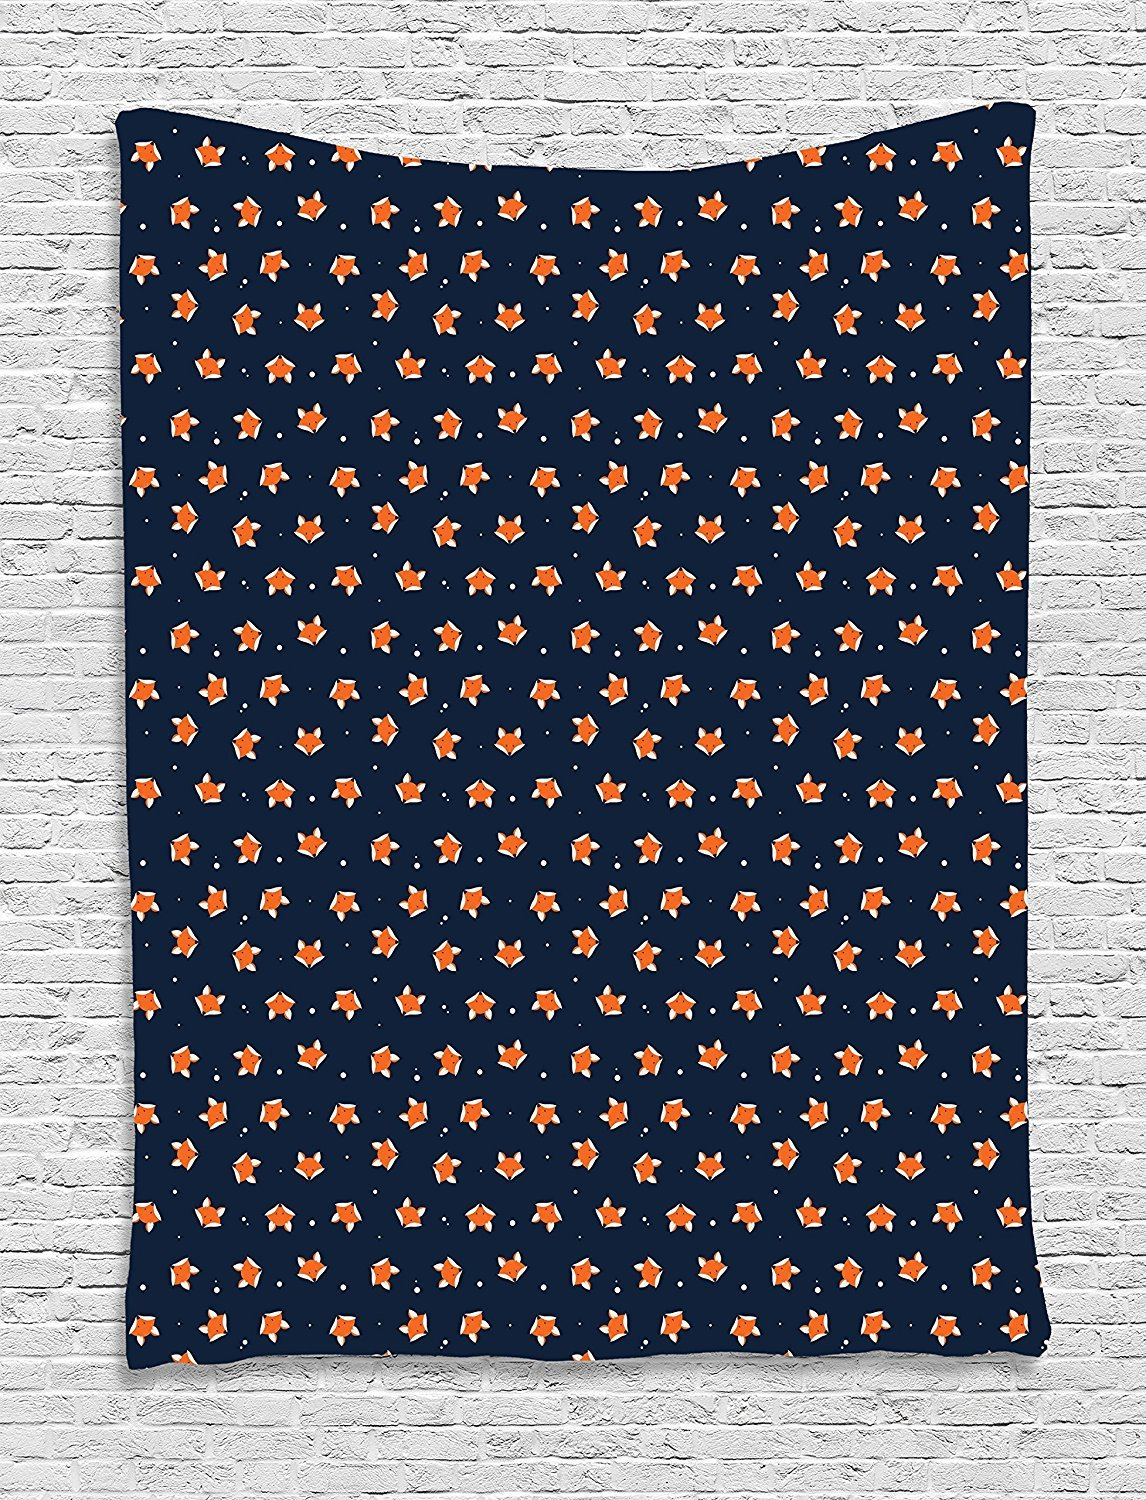 asddcdfdd Fox Tapestry, Orange Small Forest Animal Portraits Pattern on Abstract Dotted Blue Backdrop, Wall Hanging for Bedroom Living Room Dorm, 60 W X 80 L Inches, Navy Blue Orange